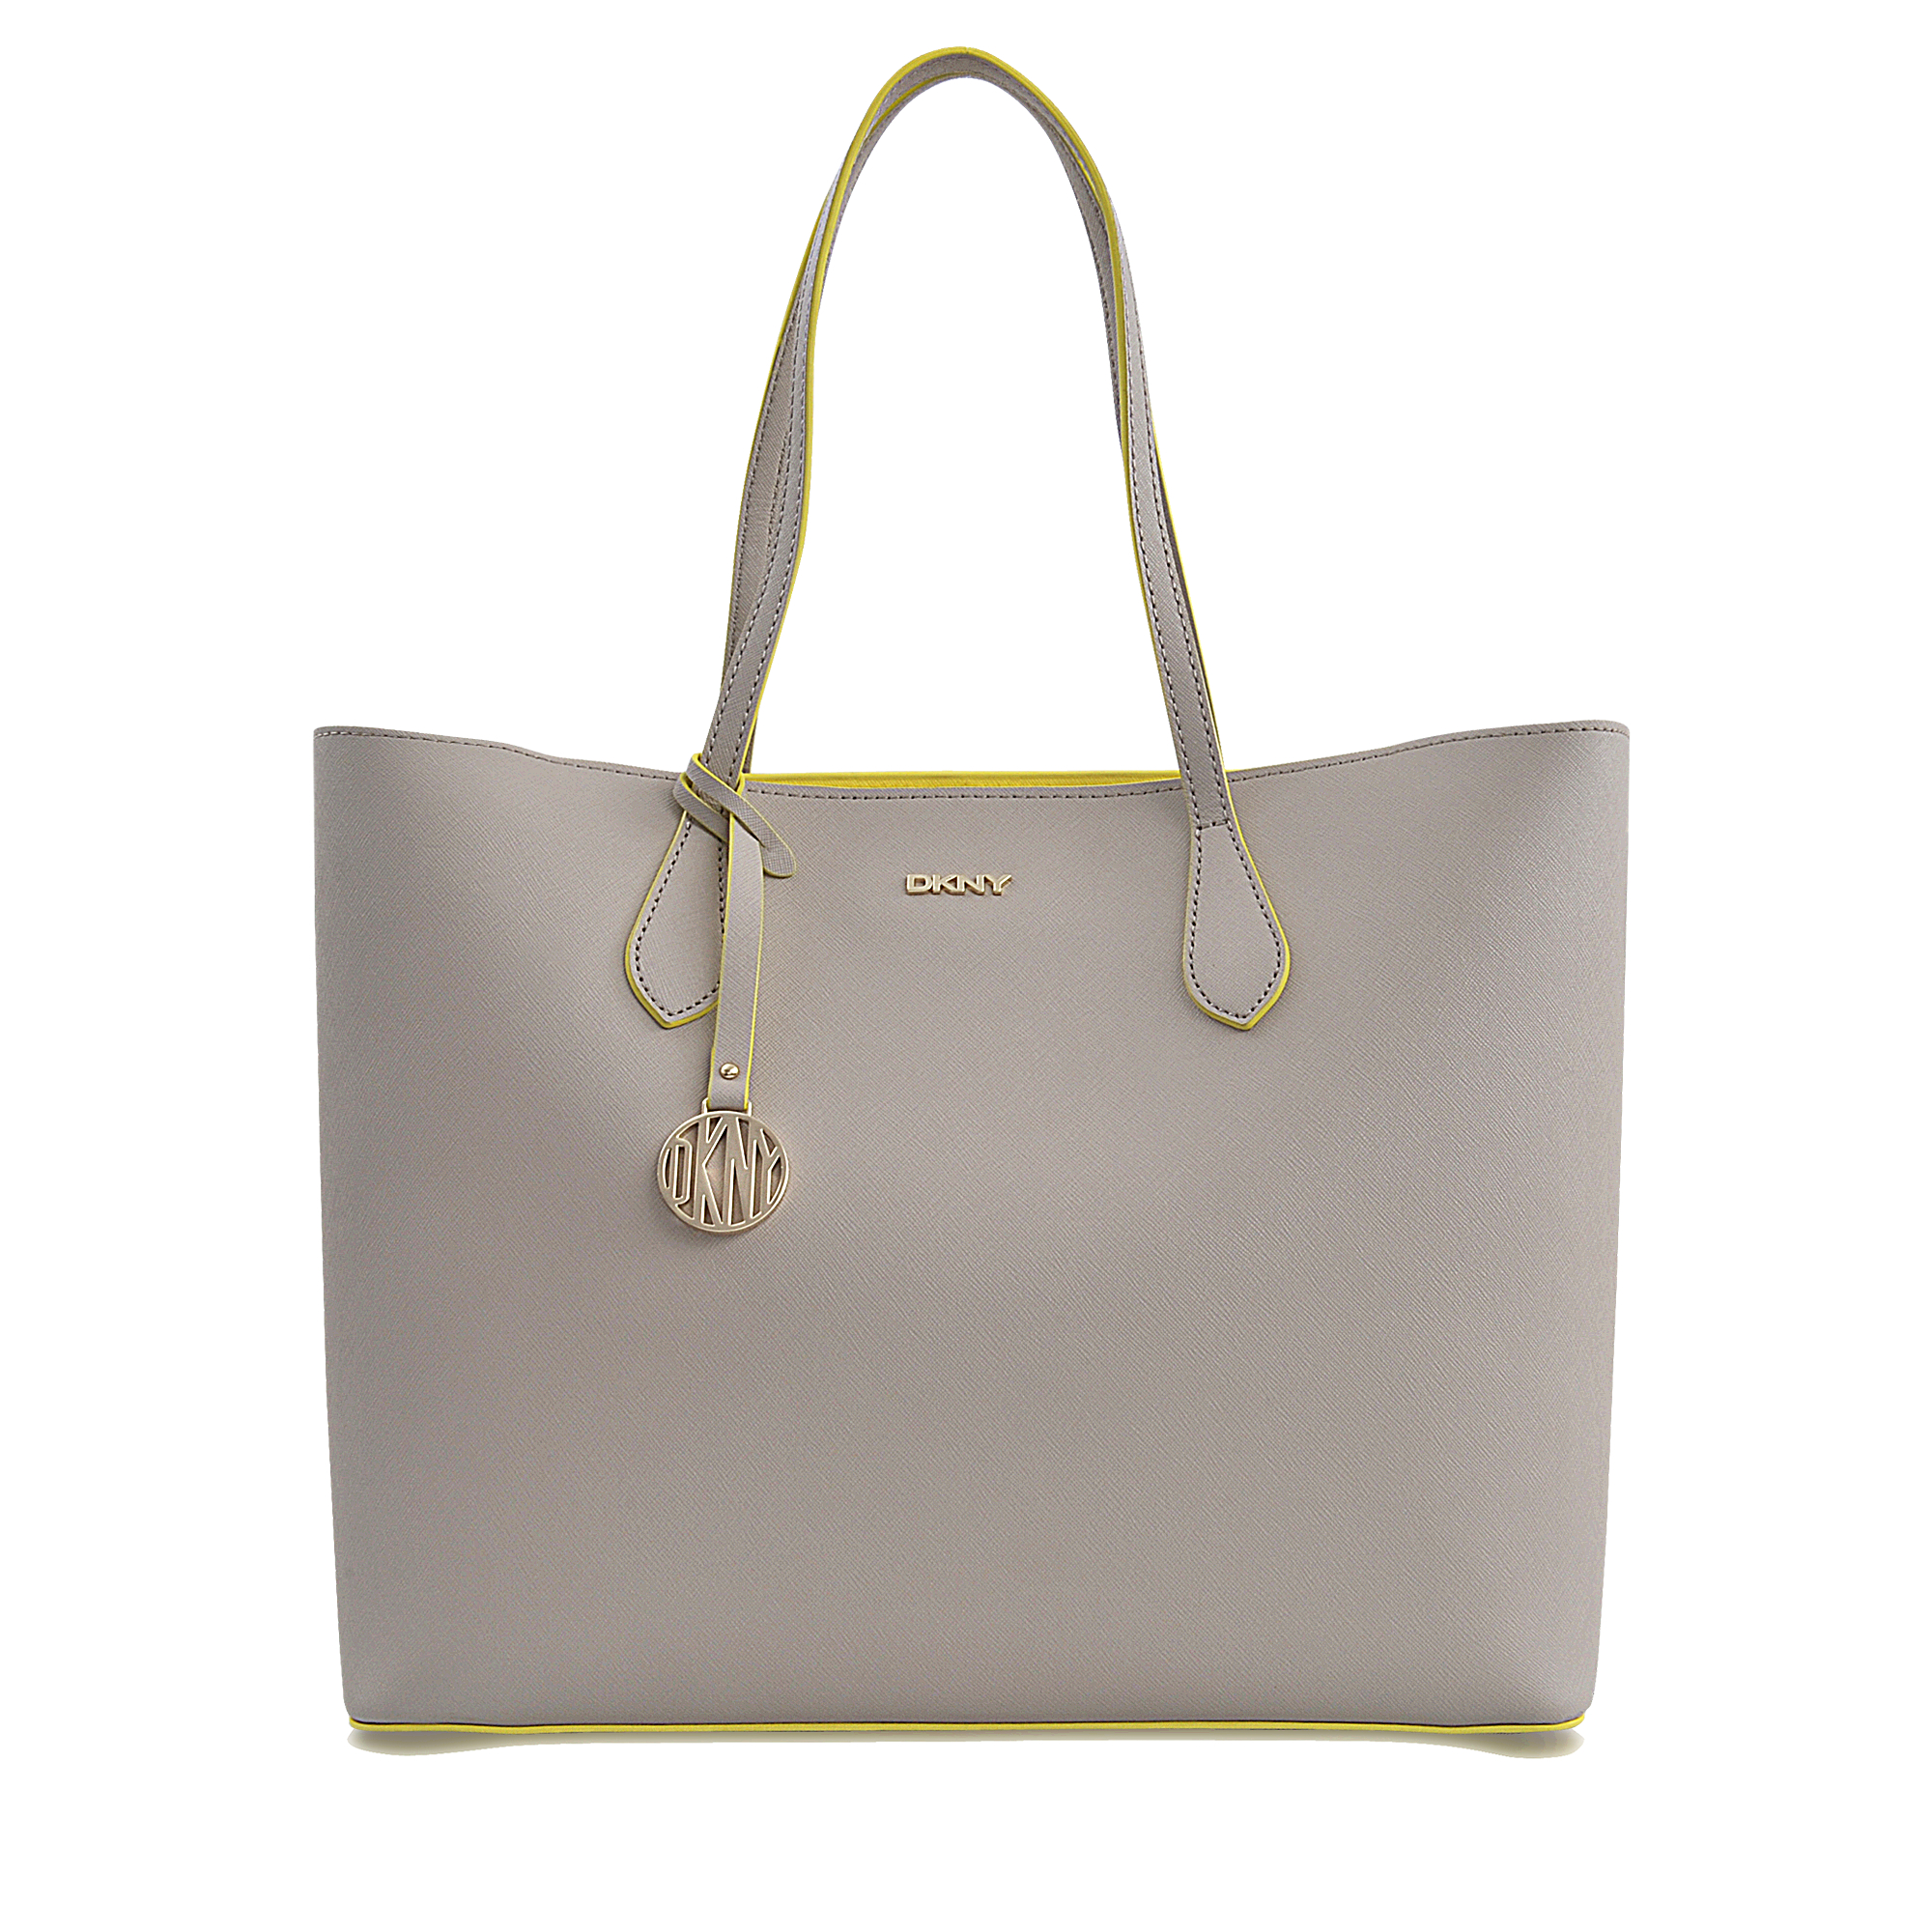 dkny ew shopper bryant park tote in beige lyst. Black Bedroom Furniture Sets. Home Design Ideas